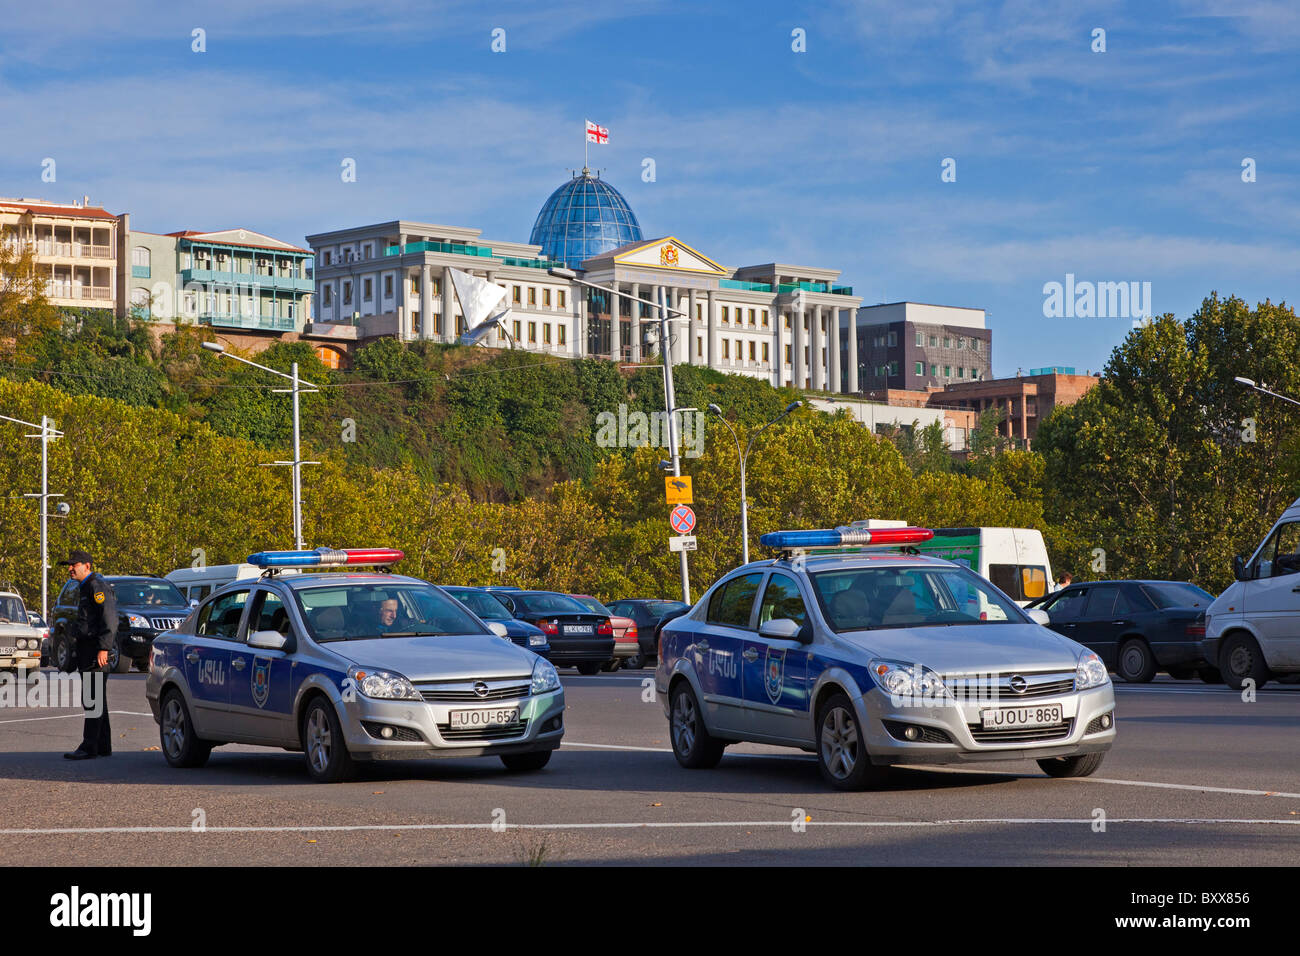 Presidential Palace Tbilisi Georgia designed by architect Michelle de Luci, with two police cars in the foreground. Stock Photo